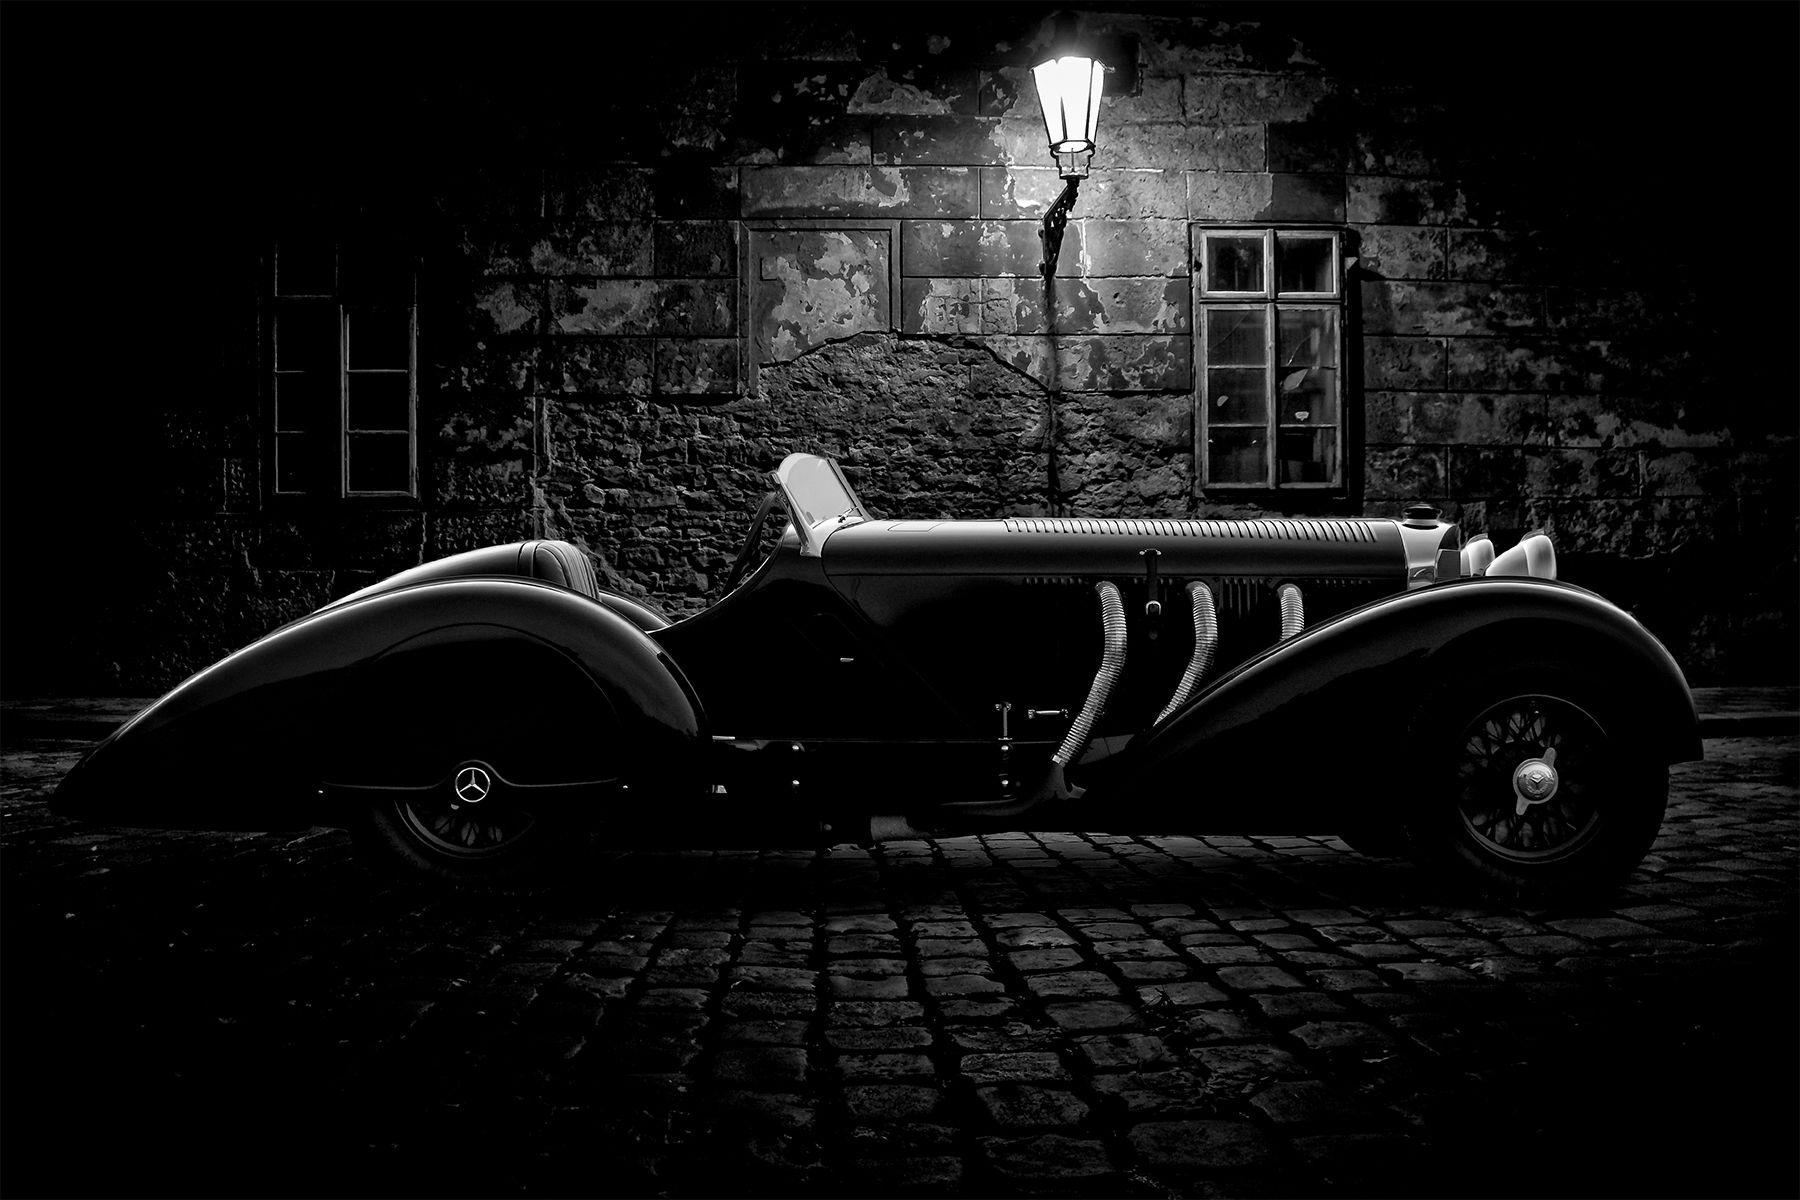 Trossi-in-the-alley-B&W-copy.jpg